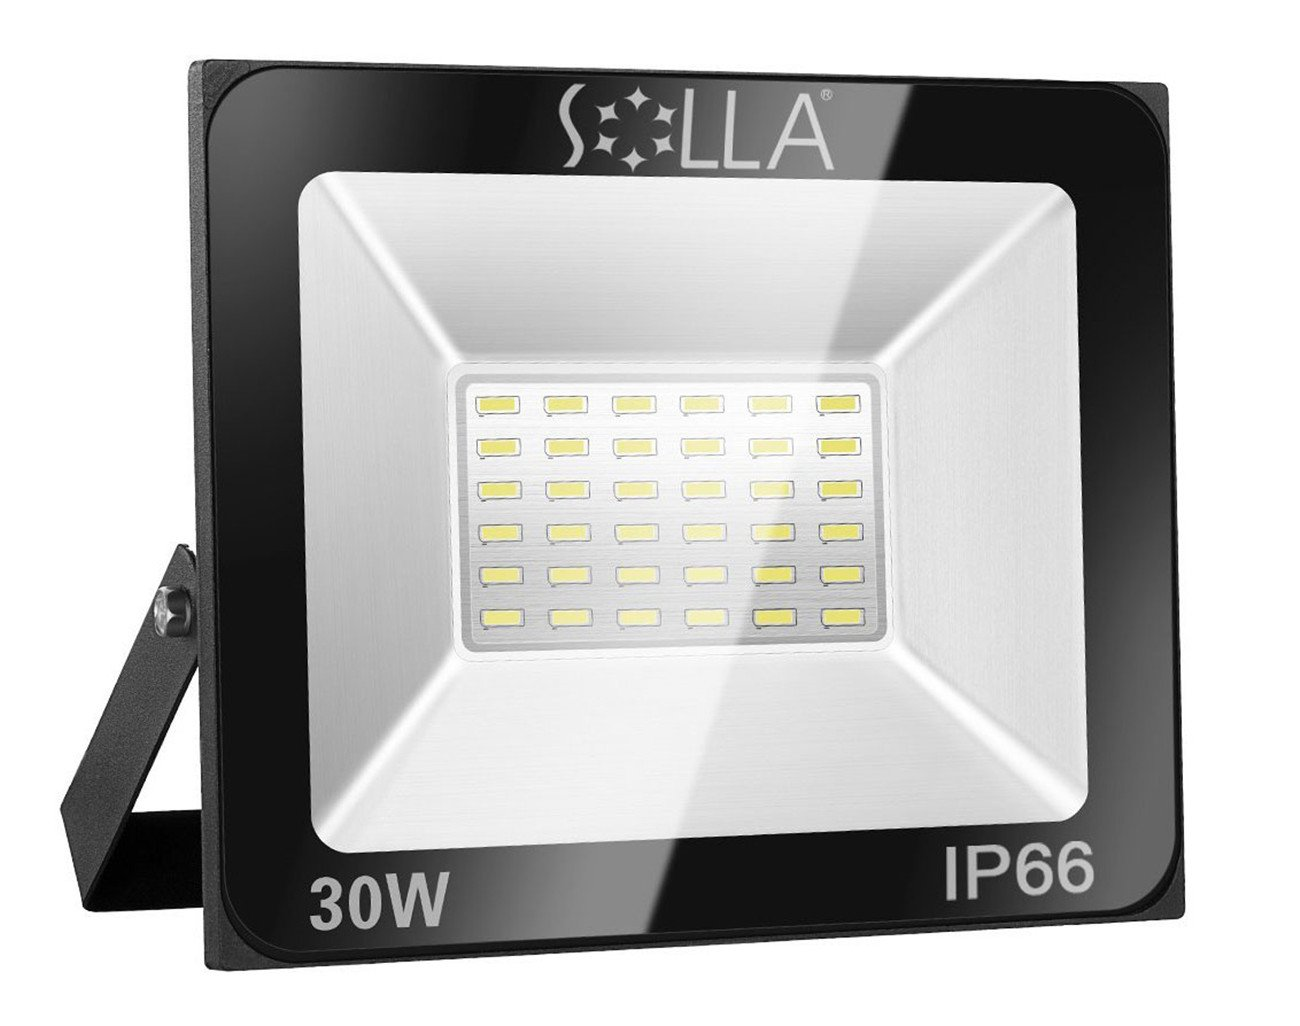 30W LED Floodlight IP66 Waterproof Outdoor Security Light, 2400LM, 6000K Daylight White, Outdoor Flood Light Wall Light for Yard, Garage, Warehouse, Parking Lot, Garden - 24 Month Warranty [Energy Class A+] SOLLA